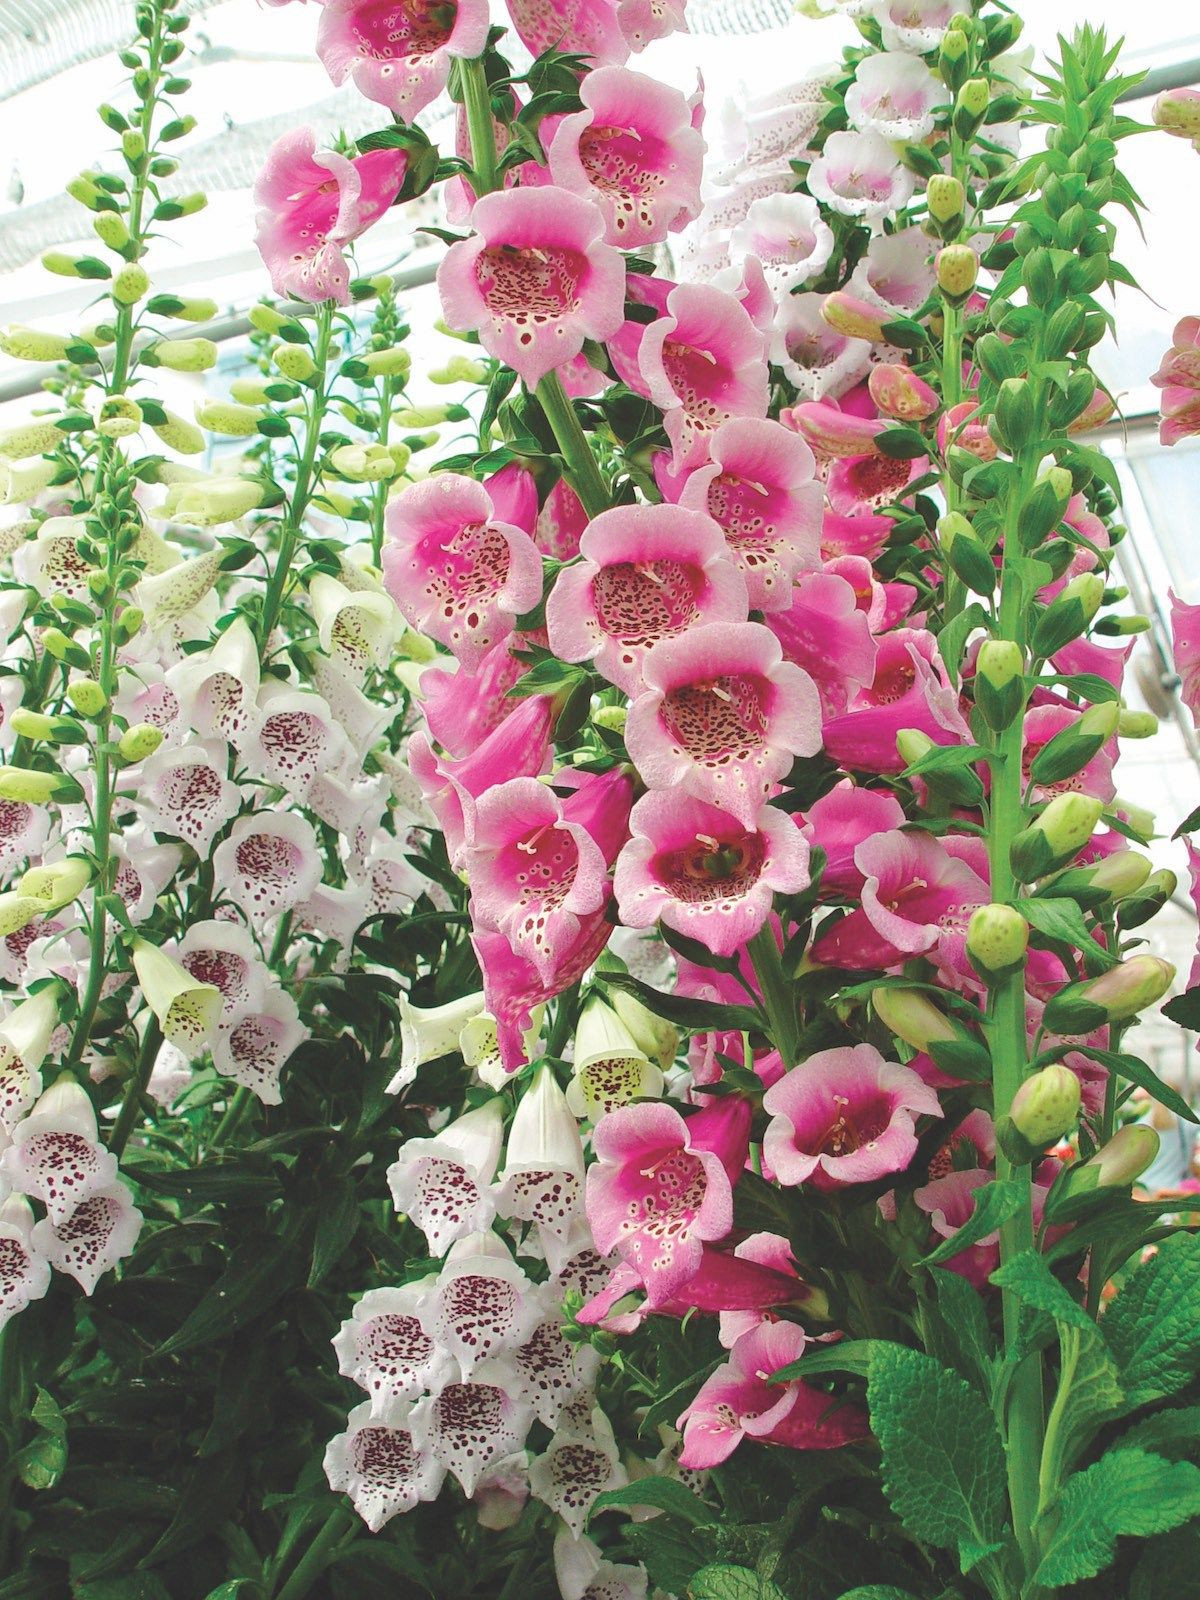 Garden designer Troy Rhone explores the many merits of foxgloves growing foxglove flowers and